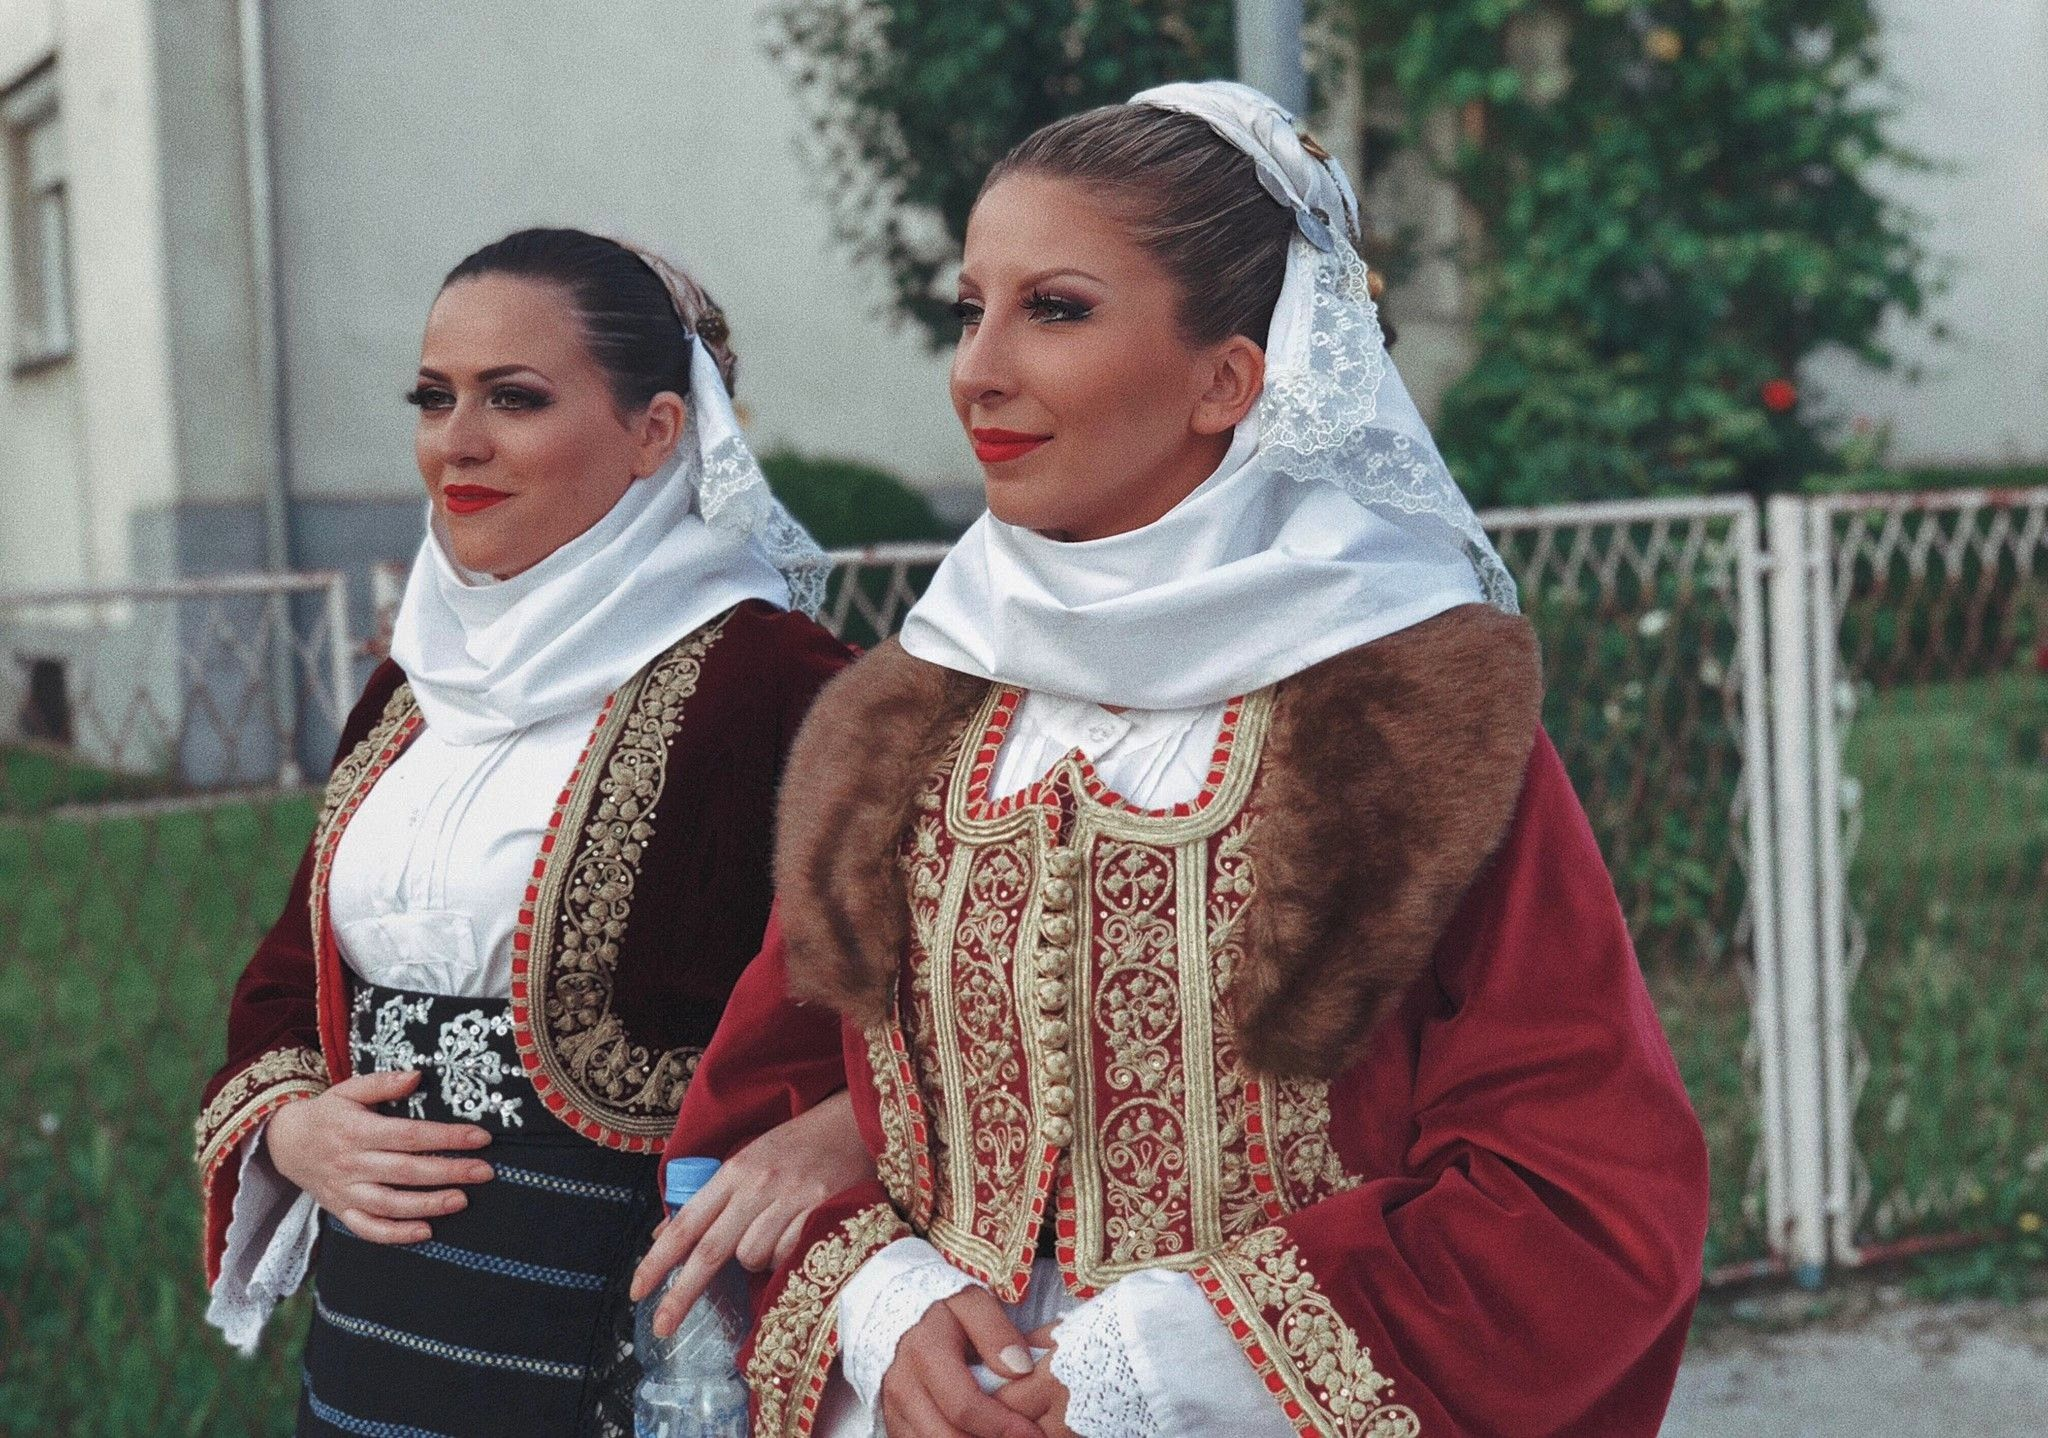 traditional costume Macva KUD Zavicaj Winterthur CHSerbian traditional costume Macva KUD Zavicaj Winterthur CH Check our website to see all Halloween Costumes We are addi...